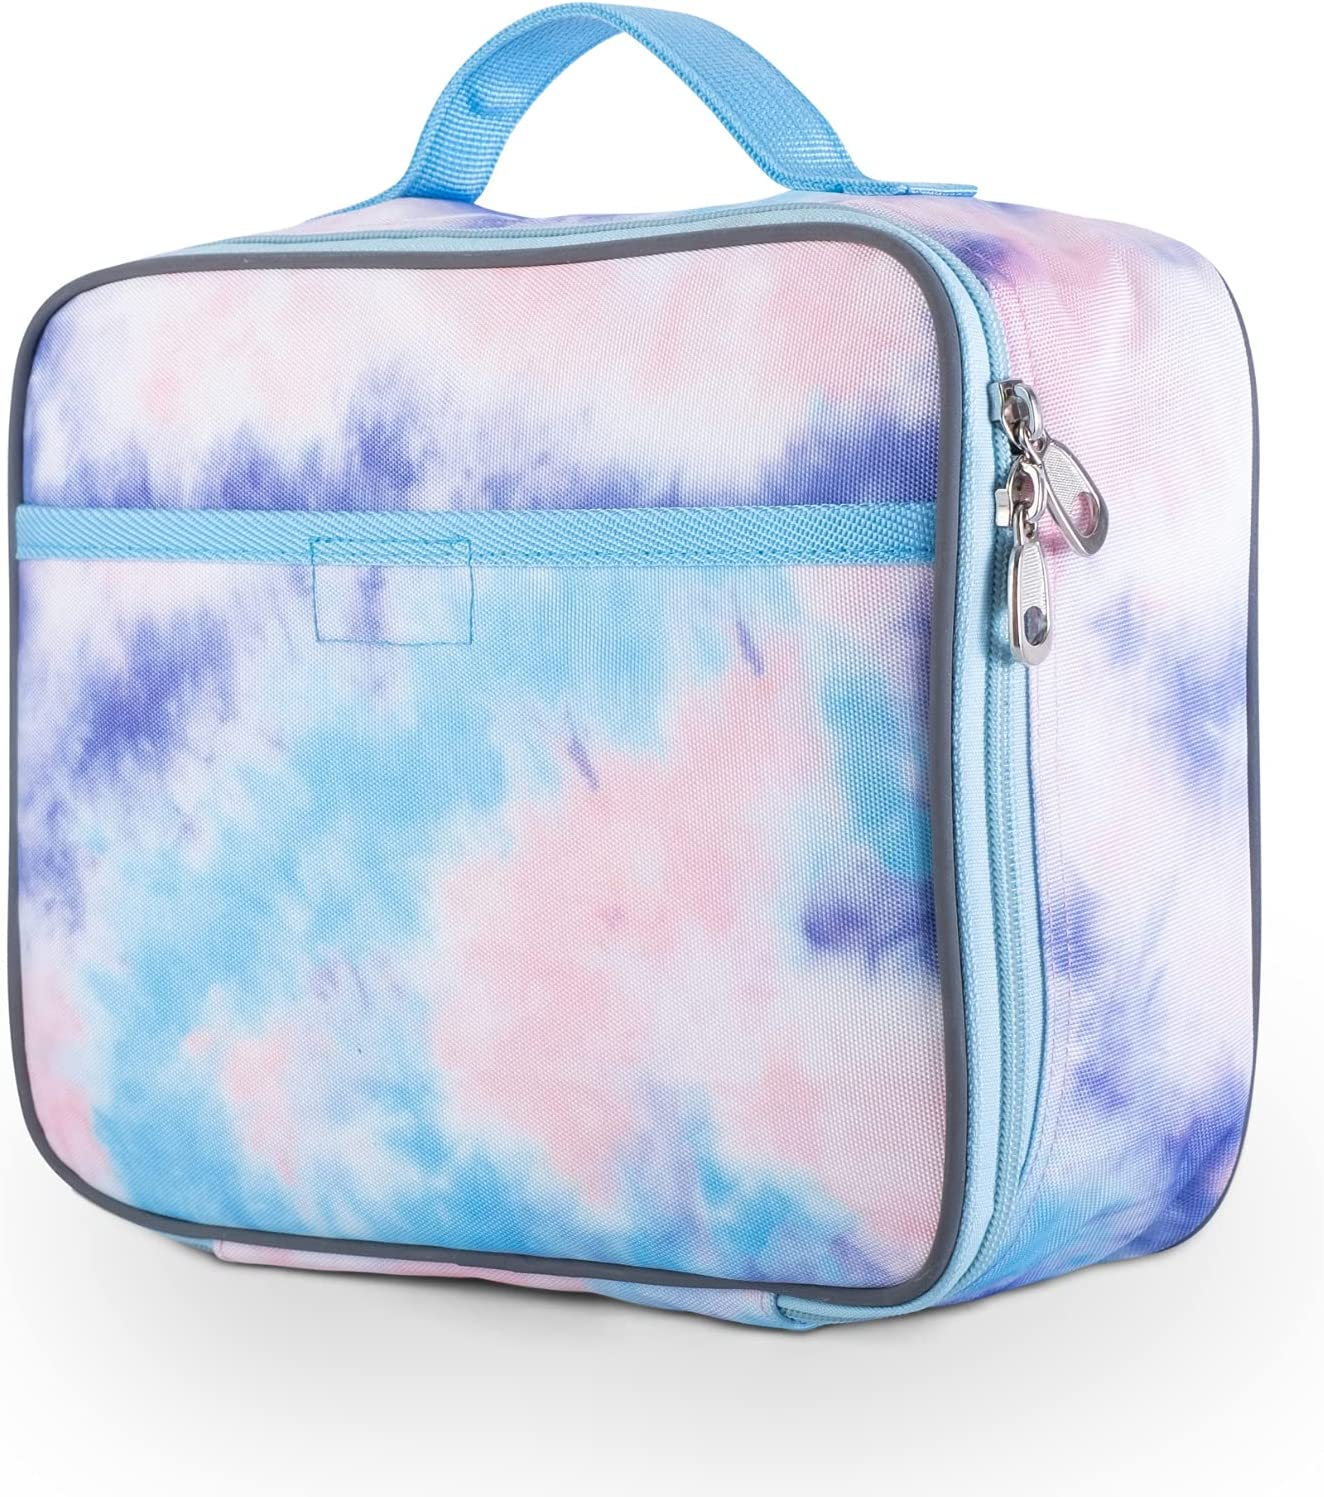 Fenrici Tie Dye Lunch Box for Insulat Kids Teens Sale special price Women Girls Ranking TOP18